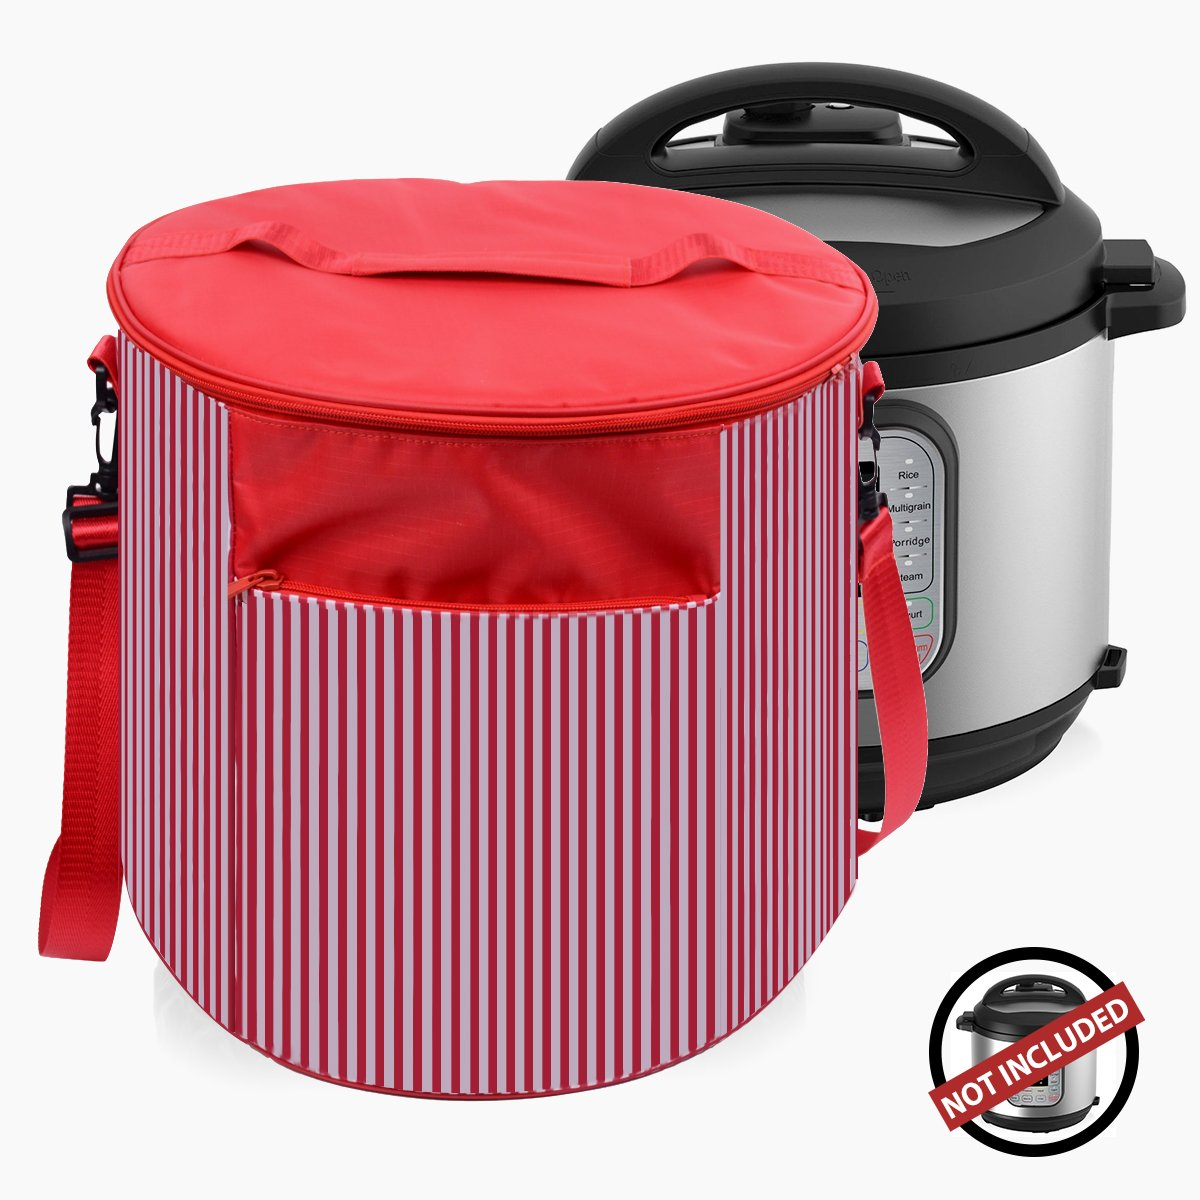 WERSEA Pressure Cooker Cover for 6 Quart Instant Pot, Appliance Dust Cover Travel Carrying Bag with Pocket for Accessories